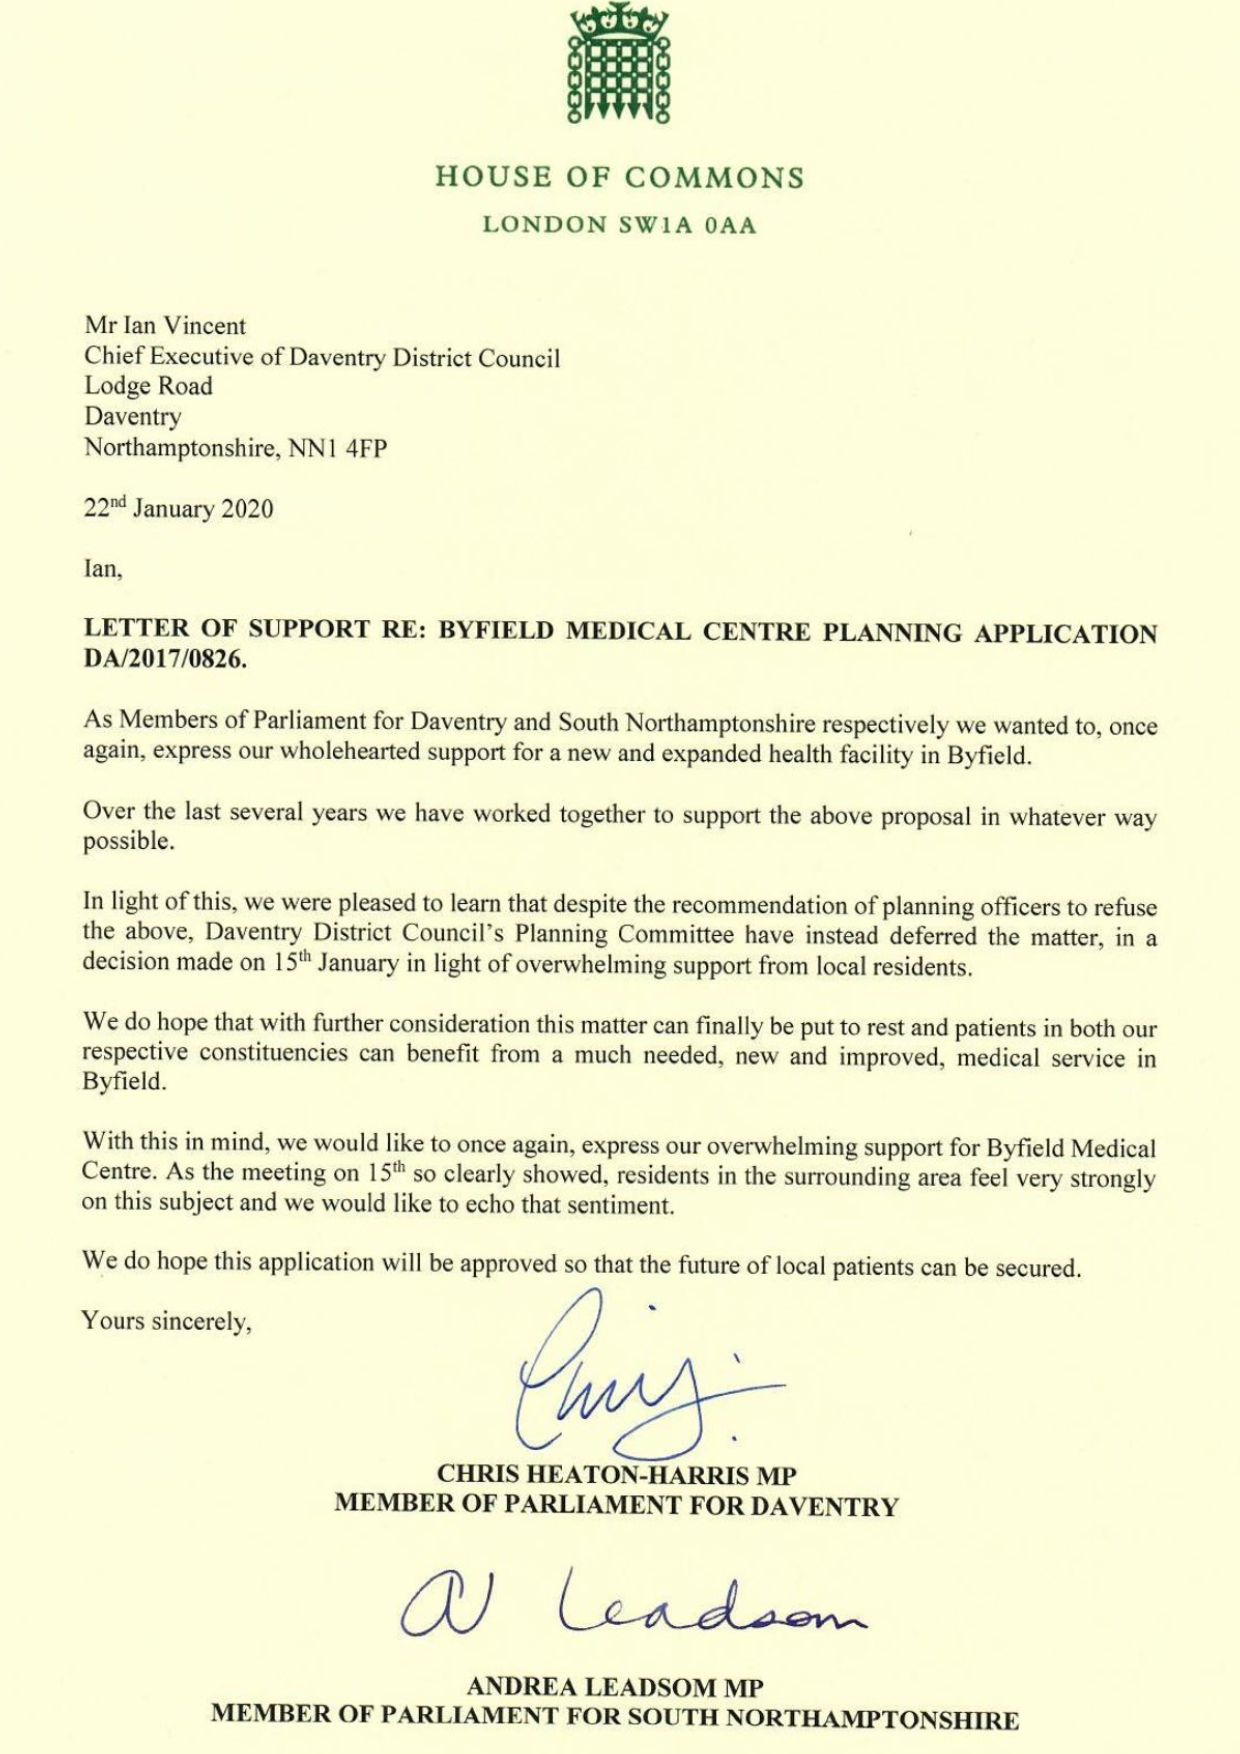 Letter of support re: Byfield Medical Centre Planning Application DA/2017/0826. The text for this letter can be found below.